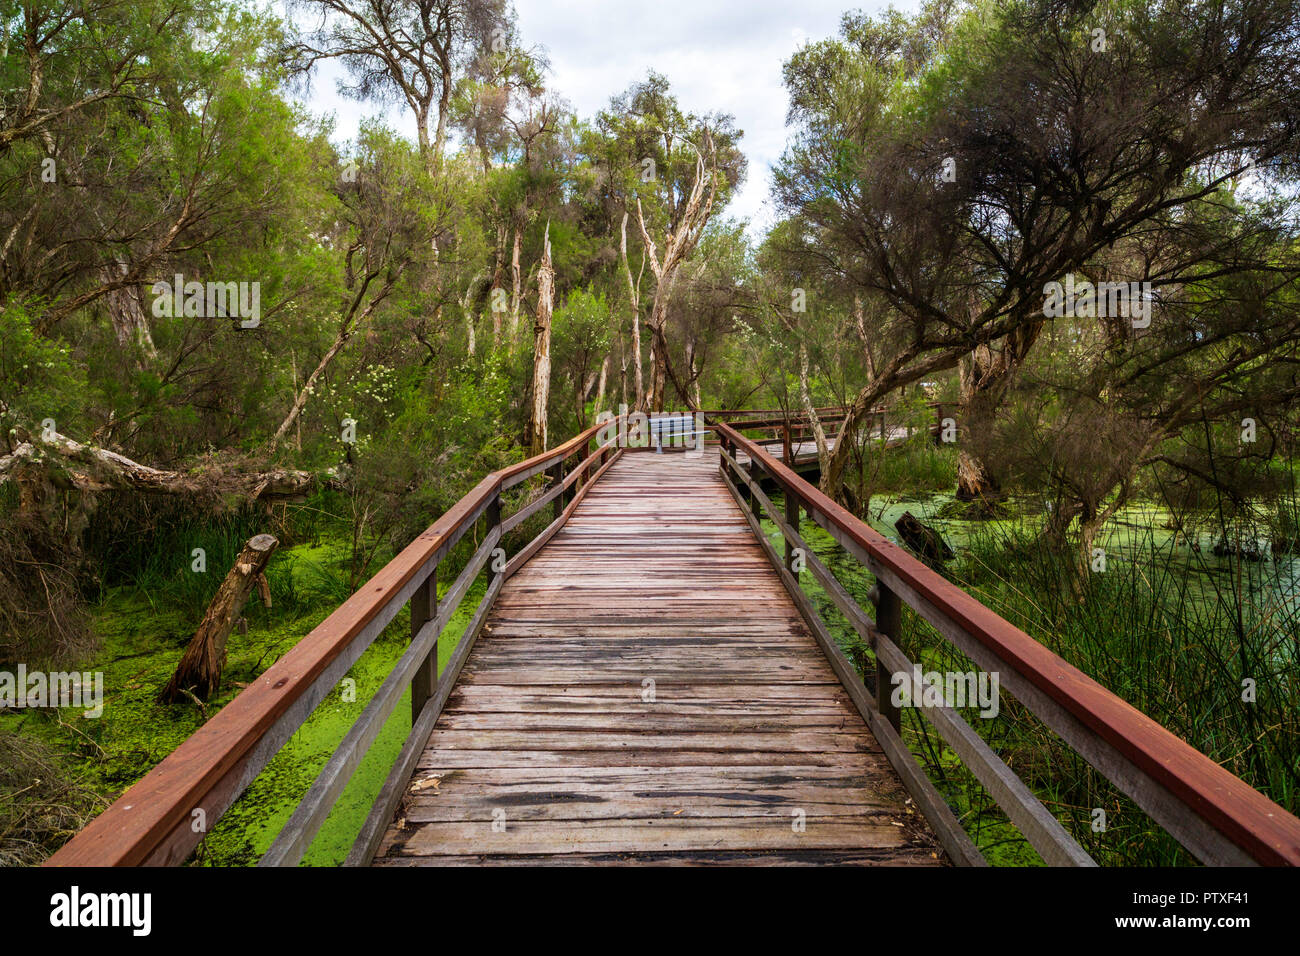 Boardwalk through Swamp paper bark (Melaleuca rhaphiophylla ) wetlands in Sir James Mitchell park in South Perth, Western Australia. - Stock Image